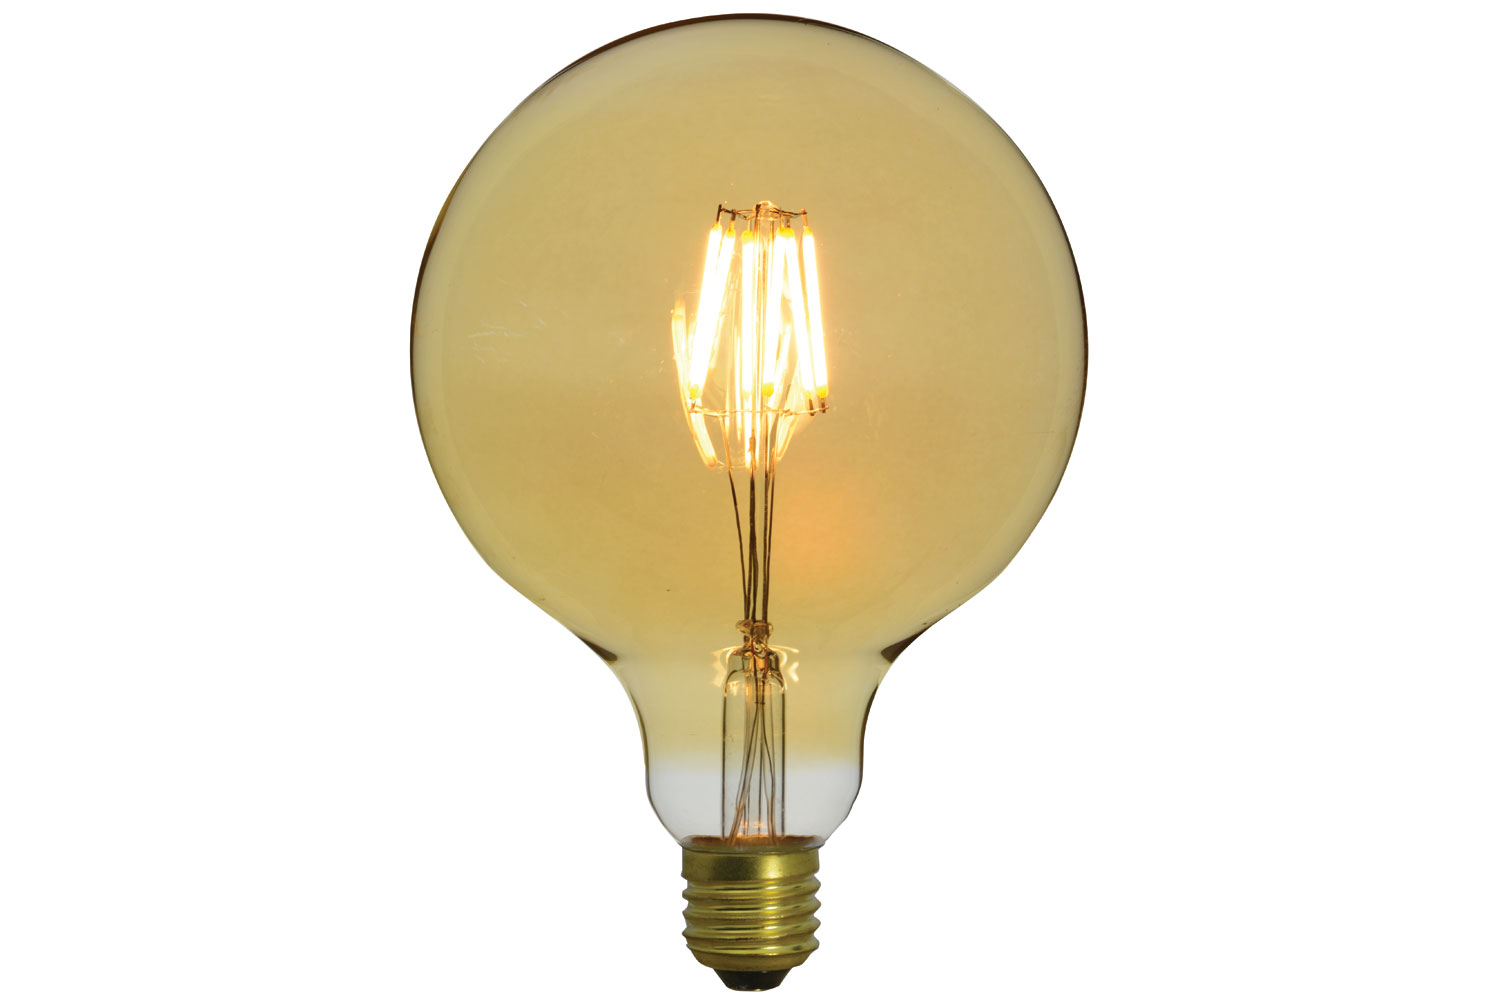 G125 LED Filament Bulb E27 4W Dimmable